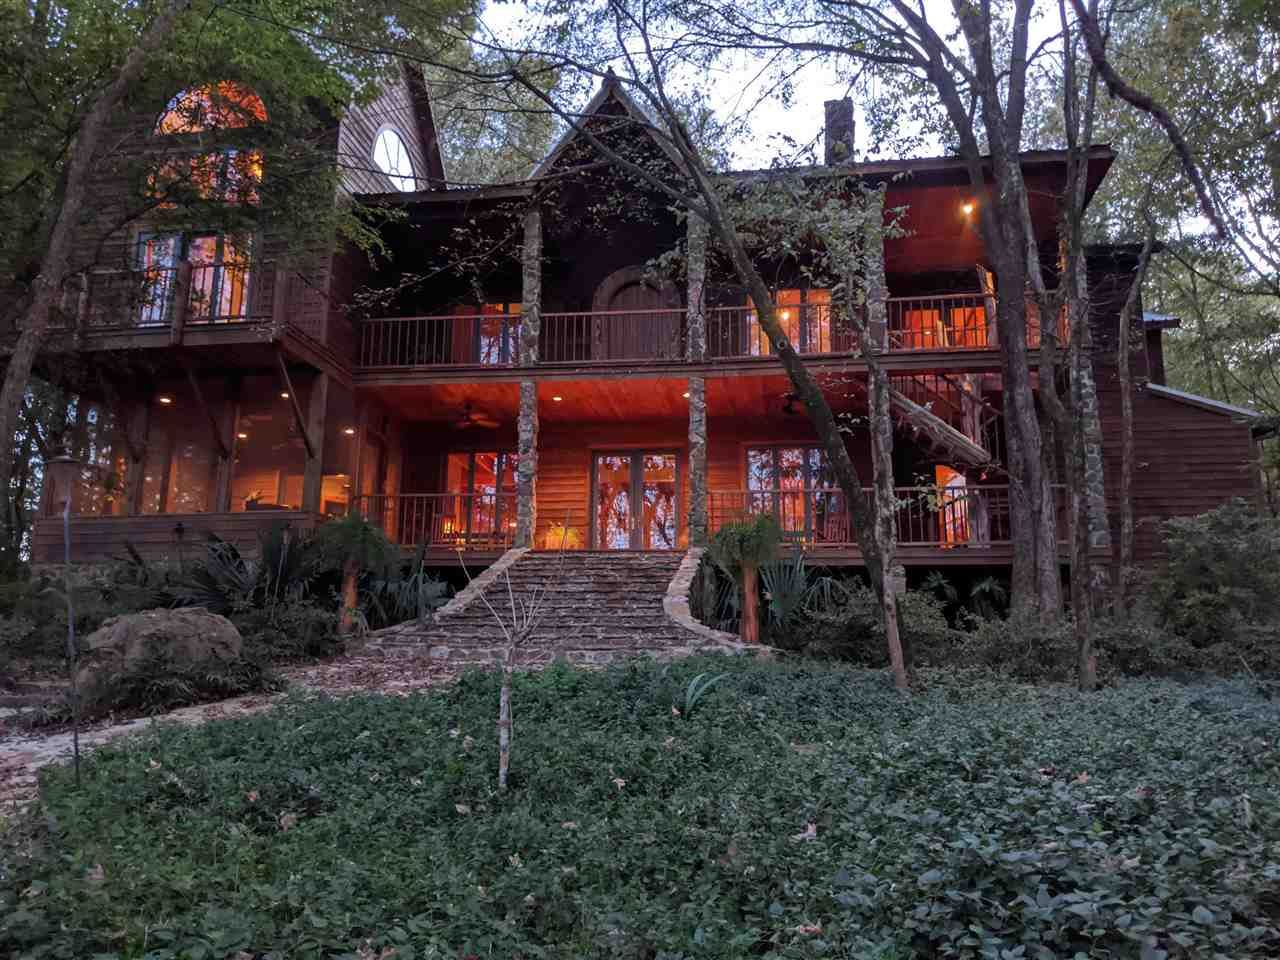 260 CHAPEL HILL RD, Flora, MS 39071 - MLS#: 334766